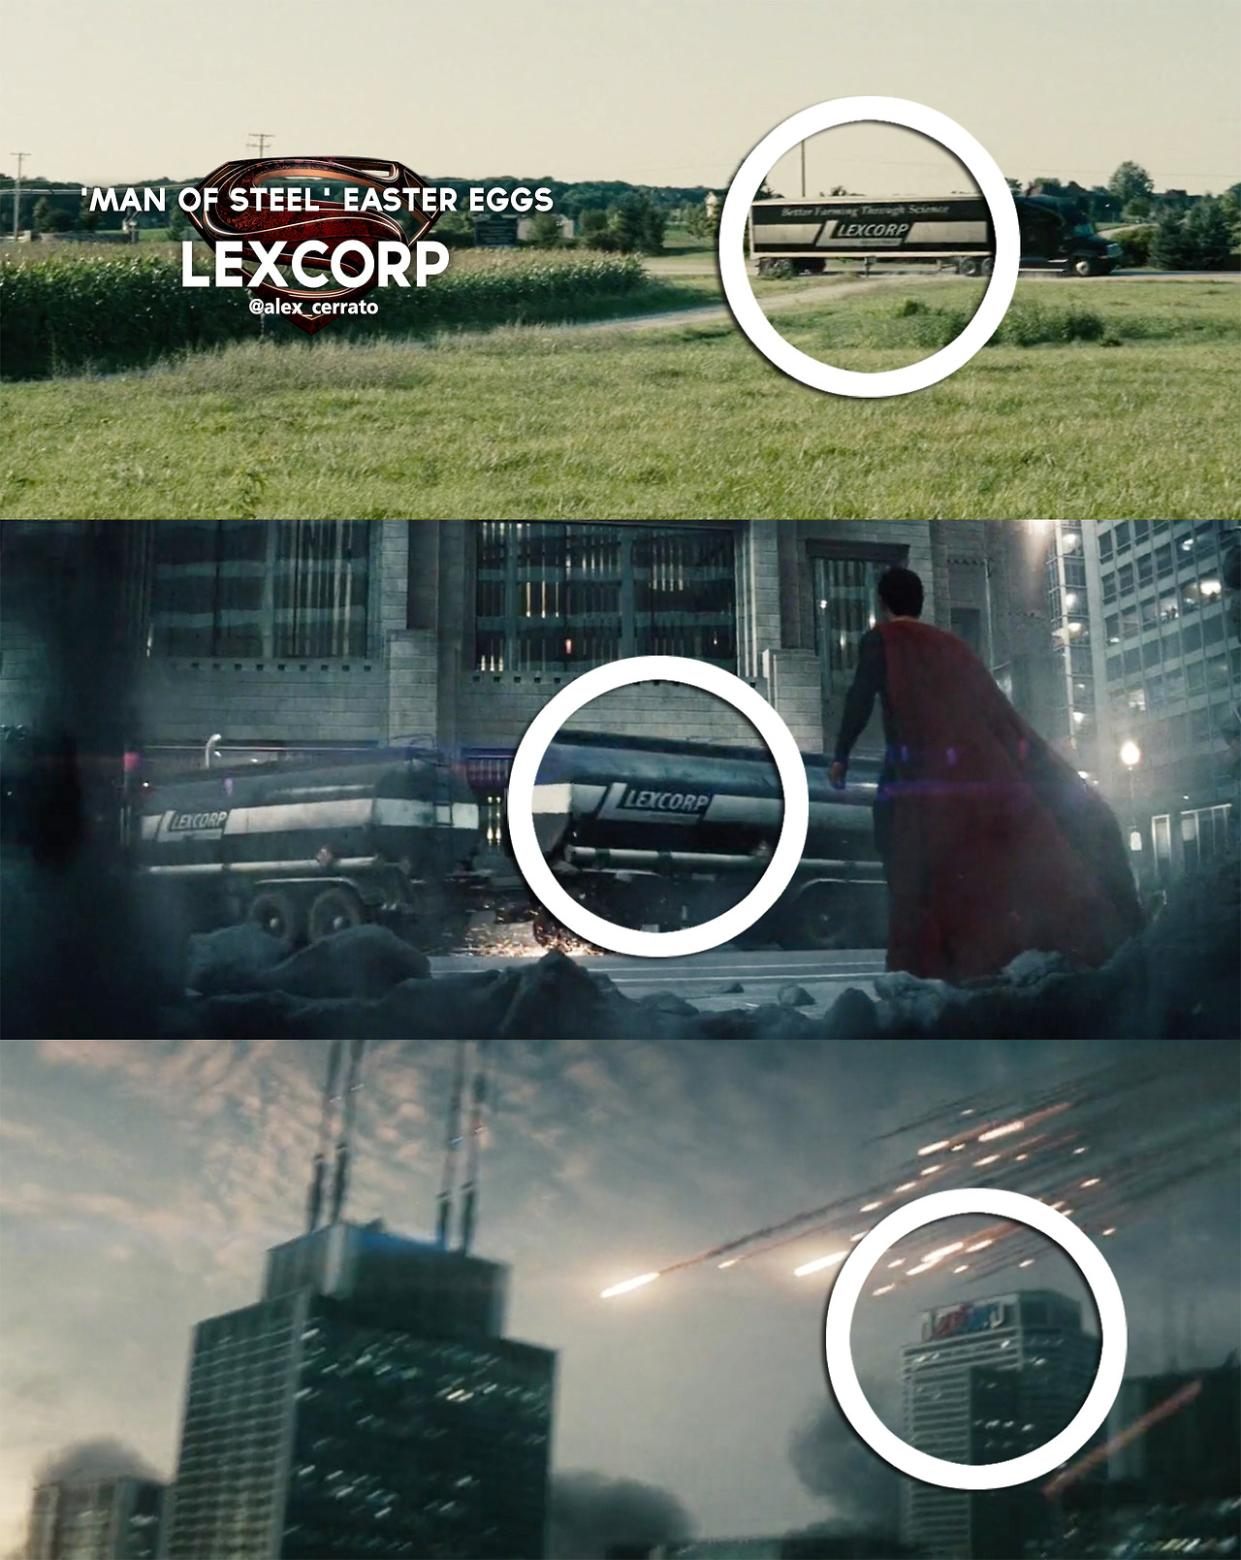 man-of-steel-reference-cachee-easter-egg-lexcorp